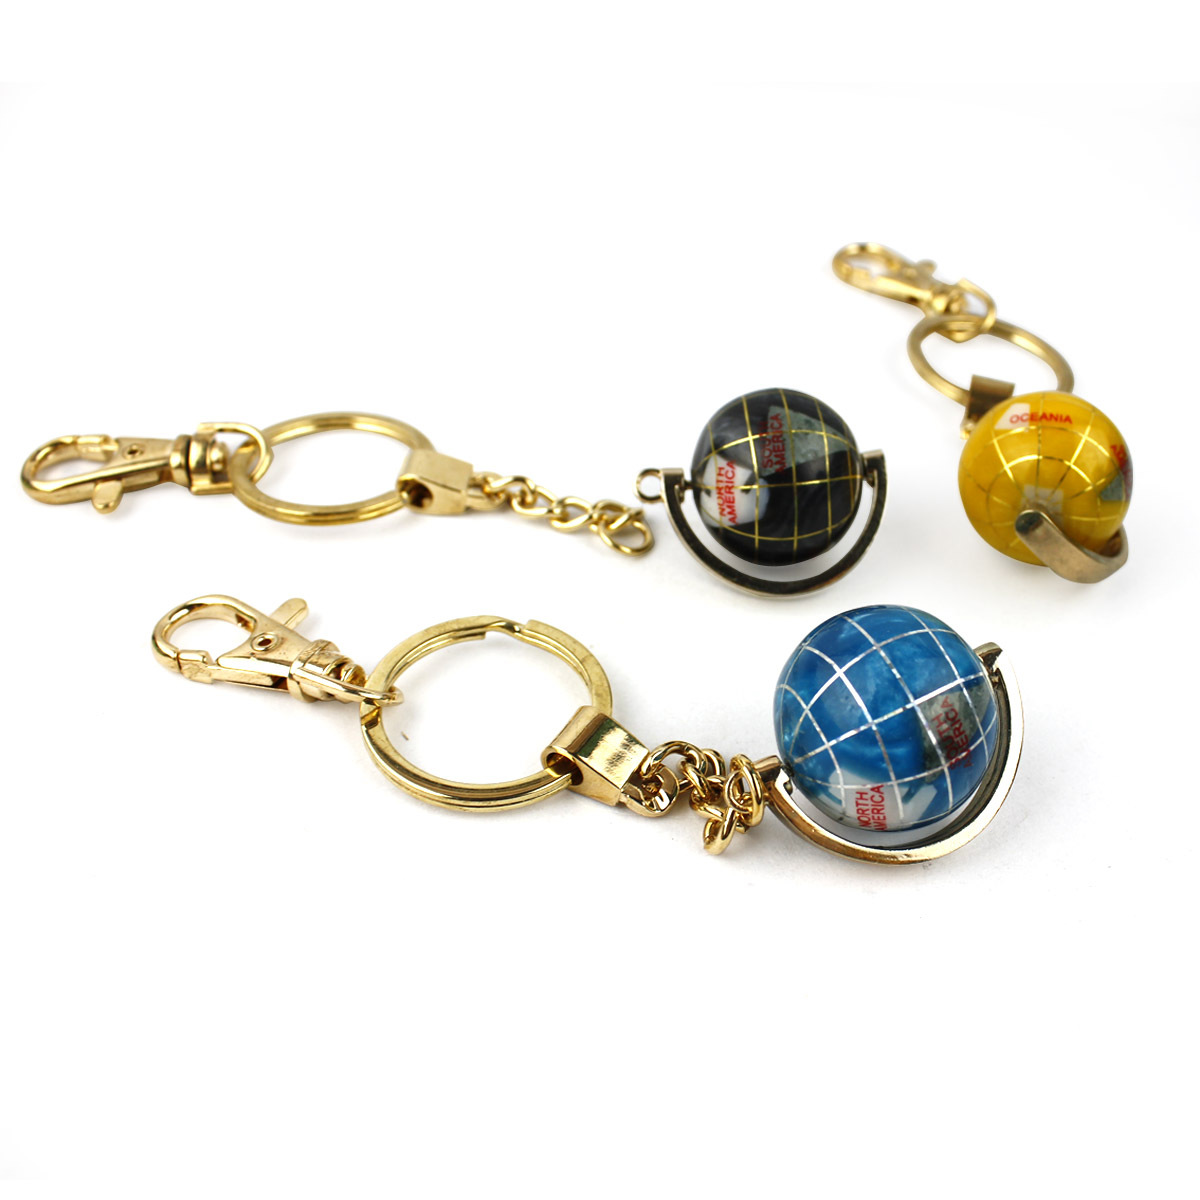 Light gem globe key chain bags buckle car hangings keychain jiaba(China (Mainland))